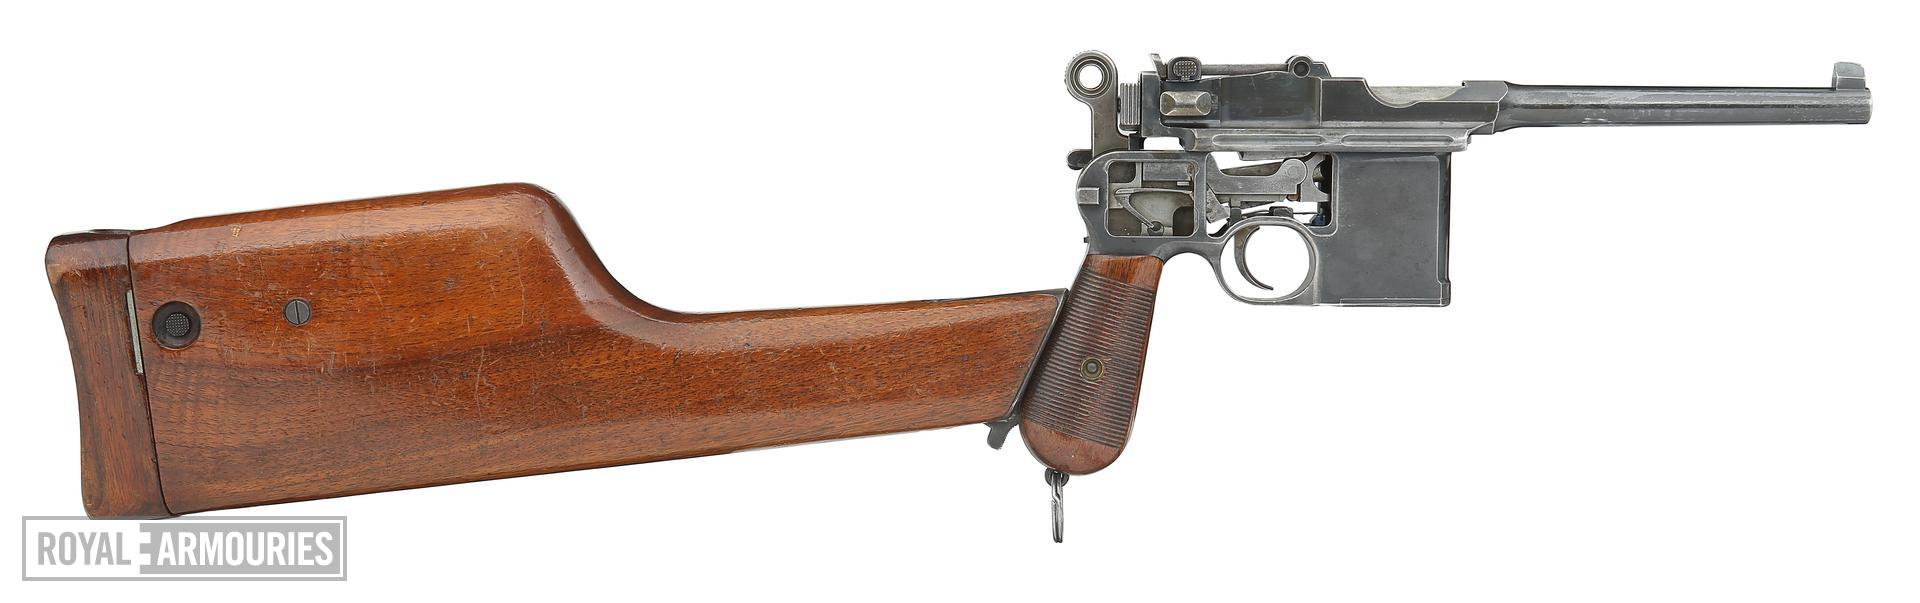 Centrefire self-loading pistol - Mauser C96 sectioned